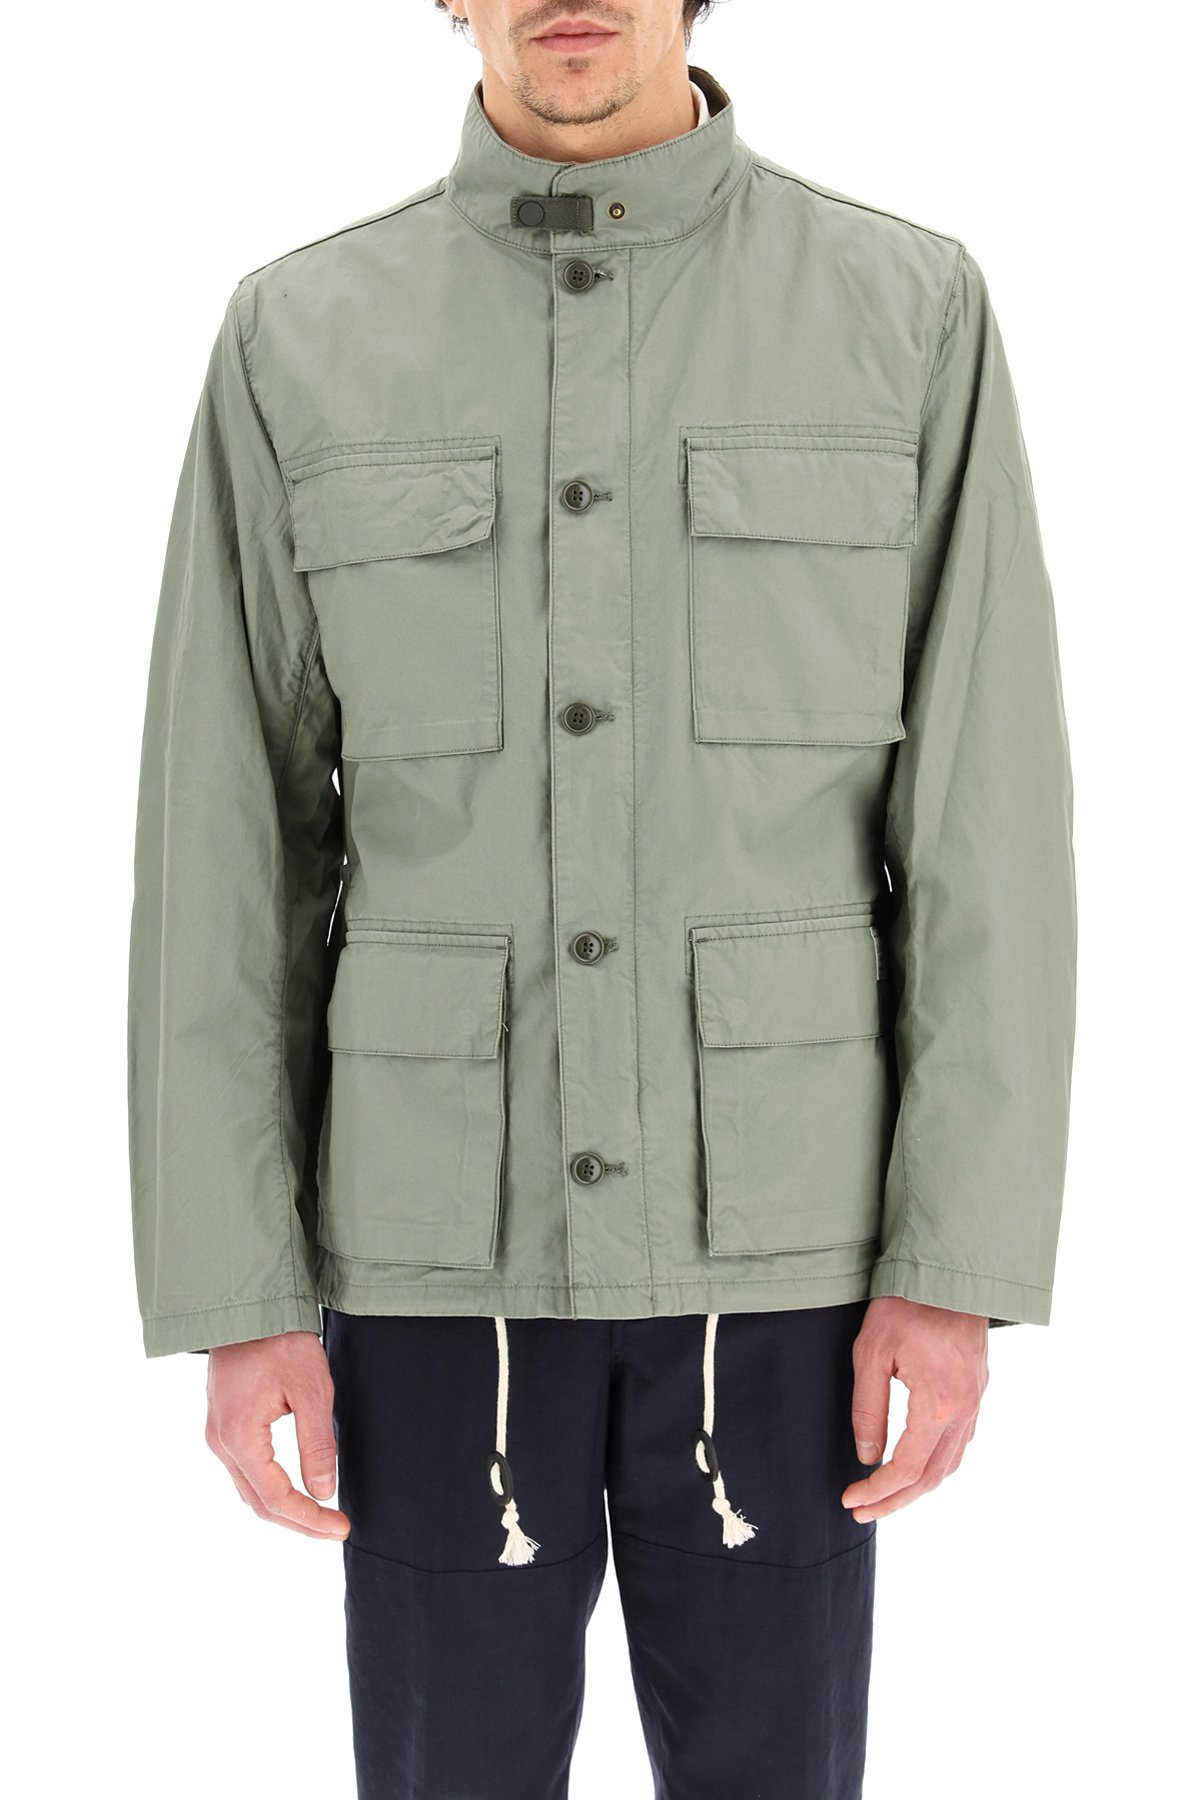 Barbour giacca casual flyn in cotone